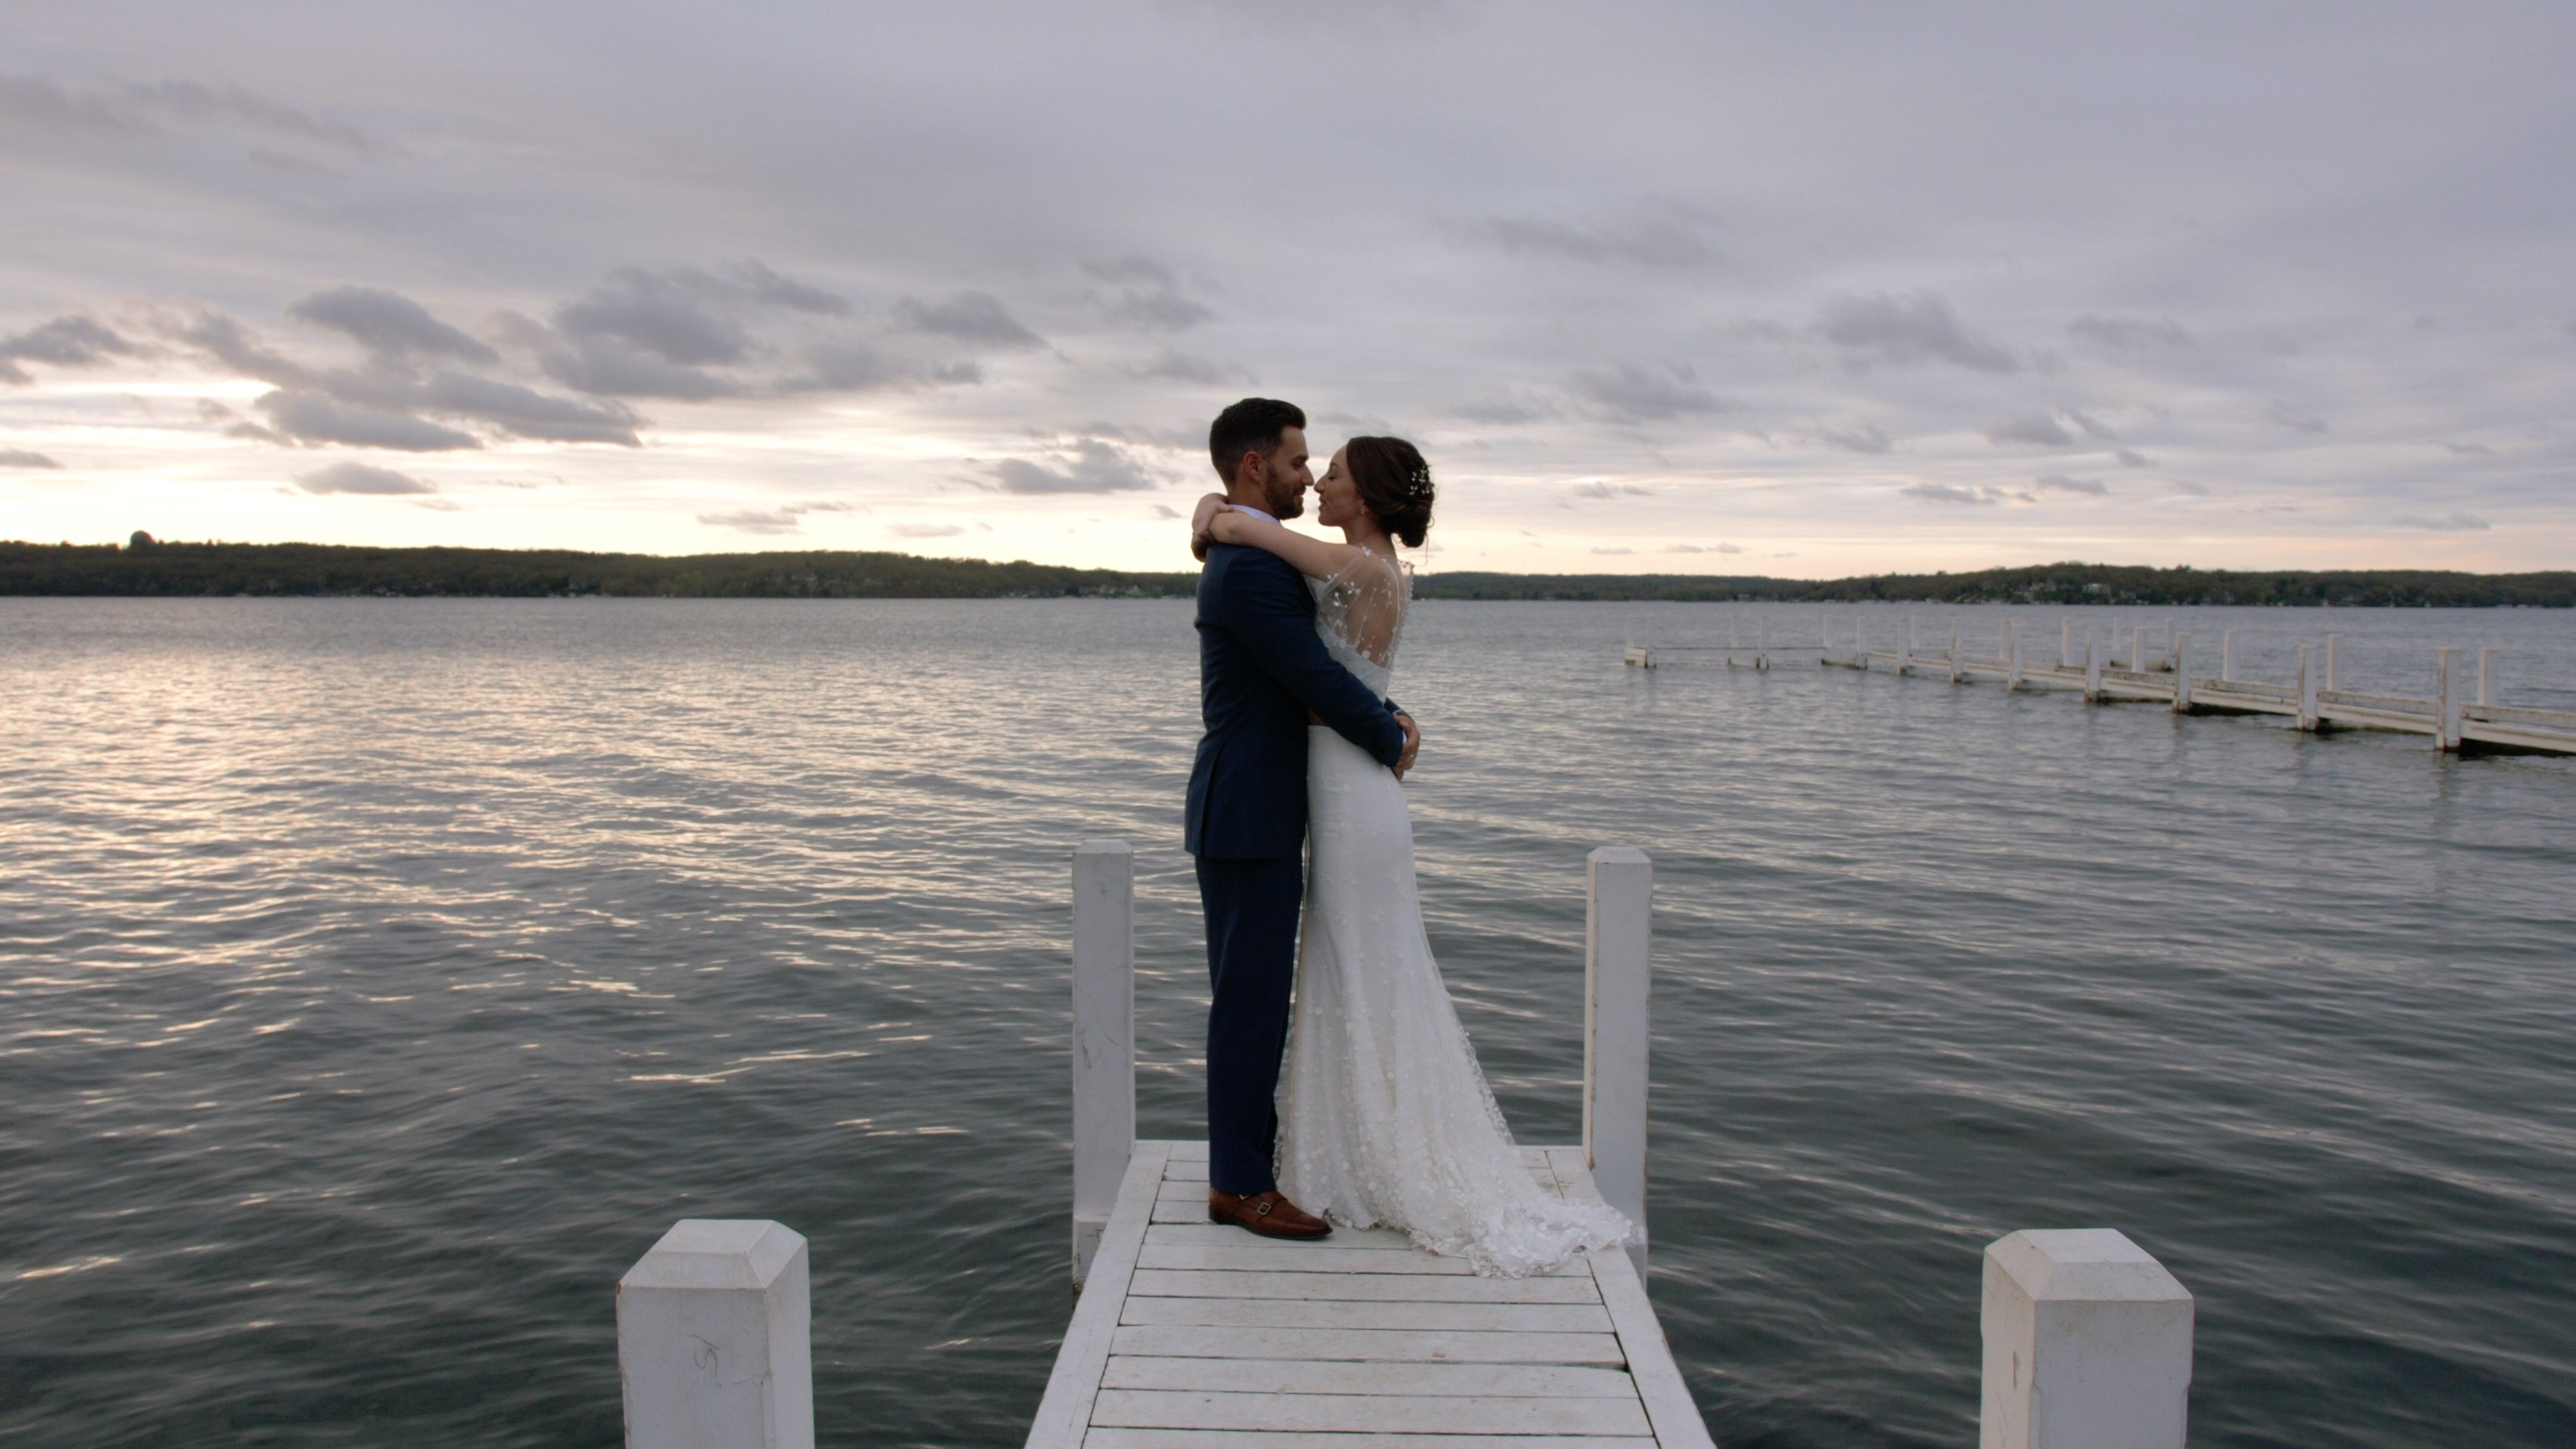 Kacie + Tyler | Fontana-on-Geneva Lake, Wisconsin | Lake Geneva Yacht Club